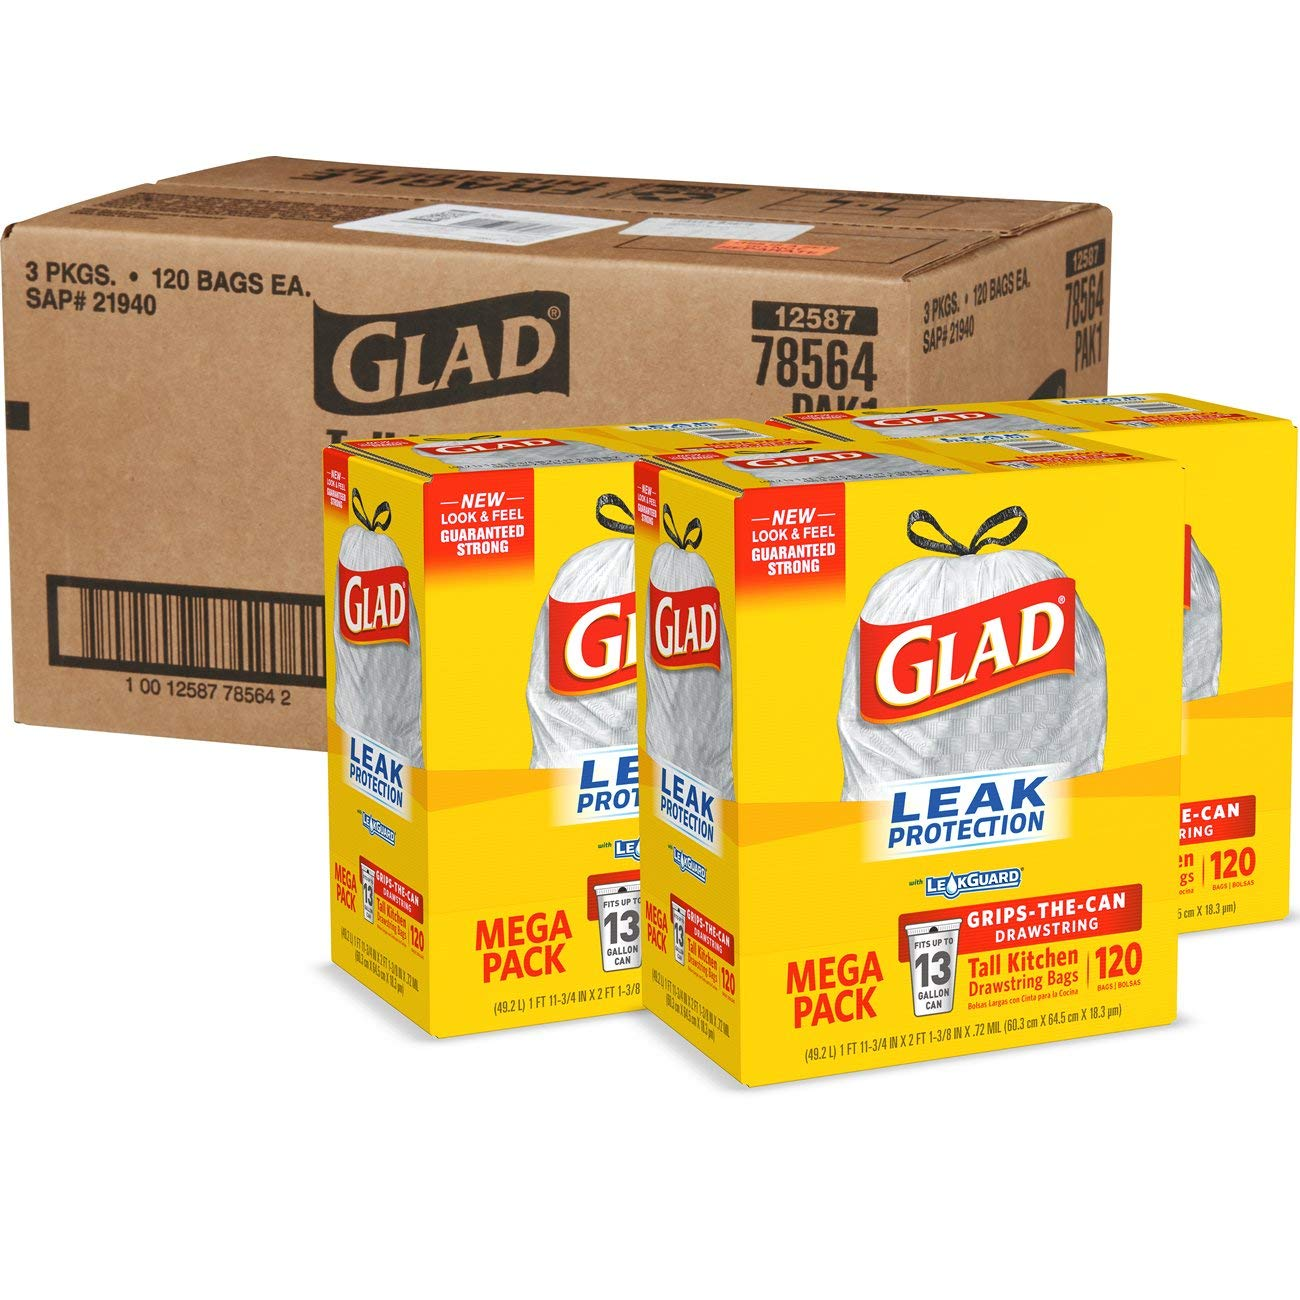 Glad Tall Kitchen Drawstring Trash Bags - 13 Gallon - 120 Count - 3 Boxes/Case